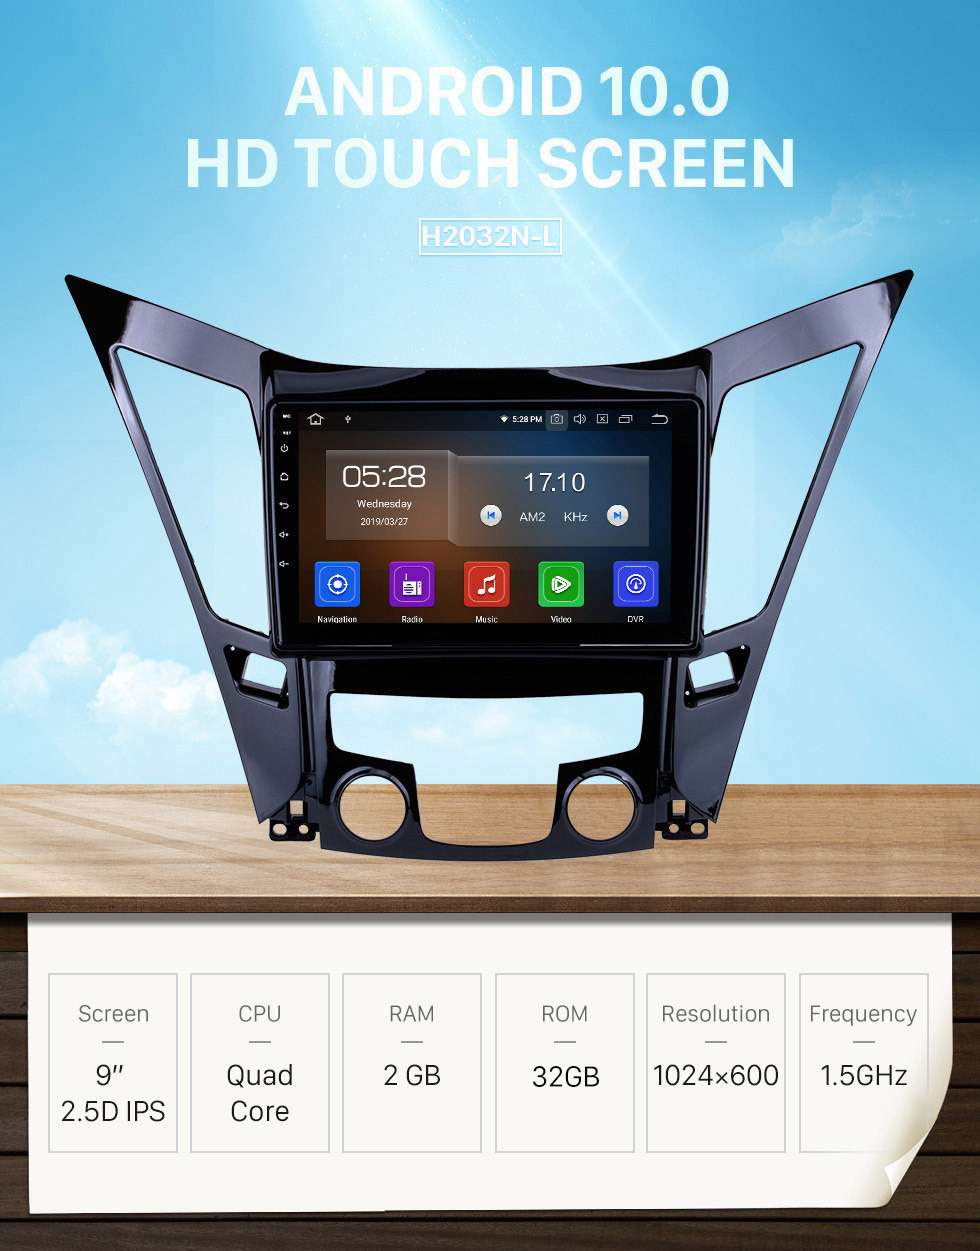 Seicane 9 Inch Android 10.0 Touch Screen GPS Navigation system For 2011-2015 HYUNDAI Sonata i40 i45 with Bluetooth 4G WiFi Video Radio TPMS DVR OBD II Rear camera AUX USB SD Steering Wheel Control